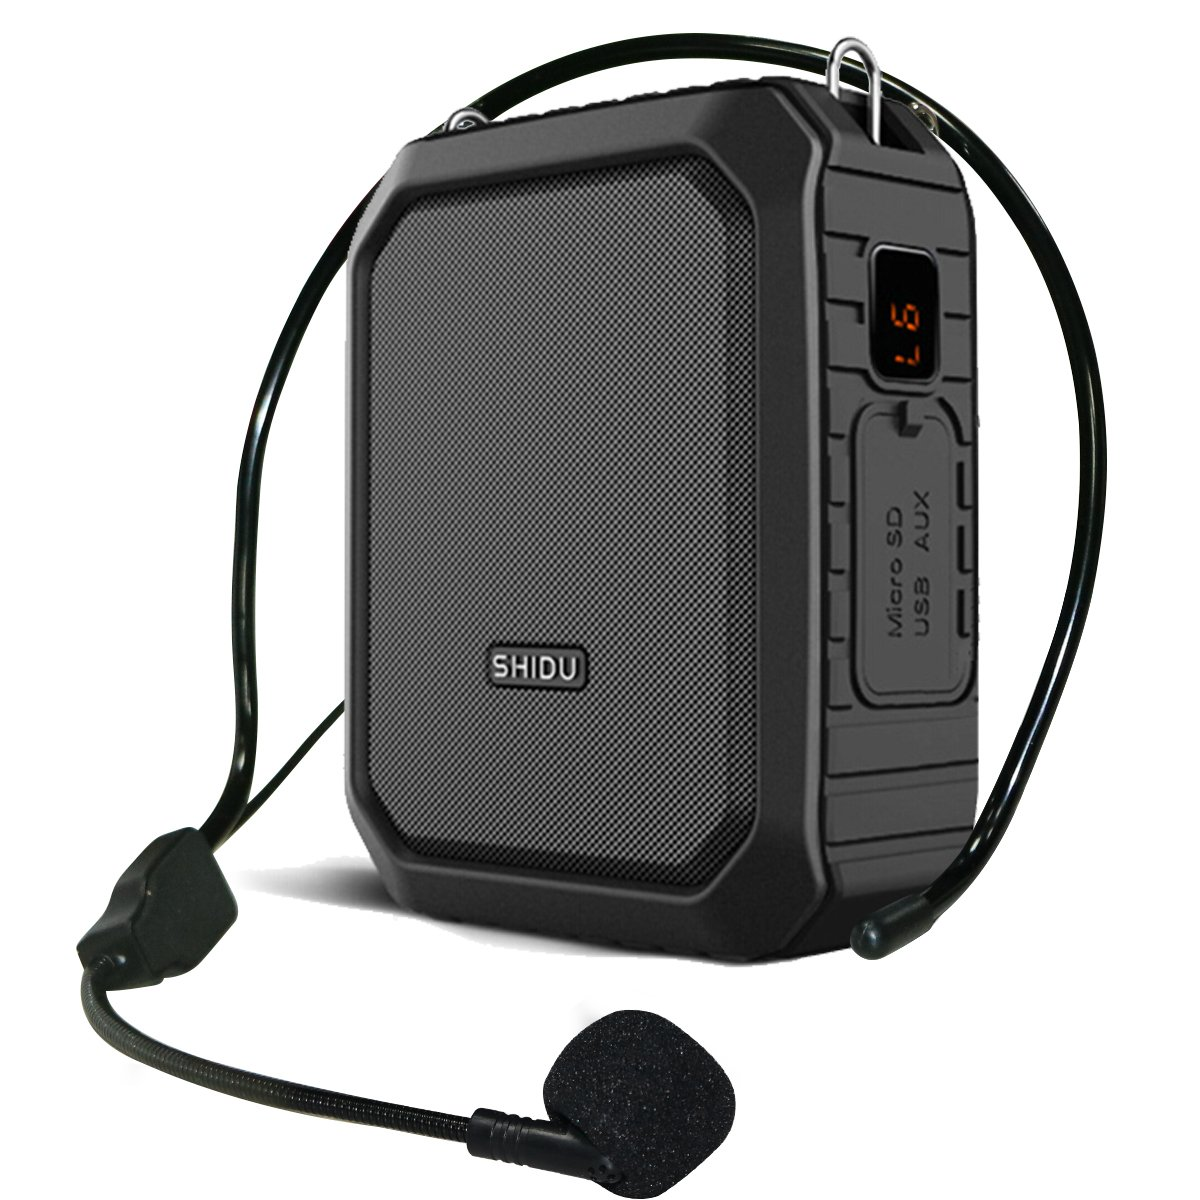 Voice Amplifier Bluetooth Loudspeaker with Wire Headset Mic, Voice Saver Waterproof Personal 18 Watts Big Power Pa System for Outdoor/Teachers/ Yoga Instructors/Coaches/ Elderly/Tour Guide (Black)